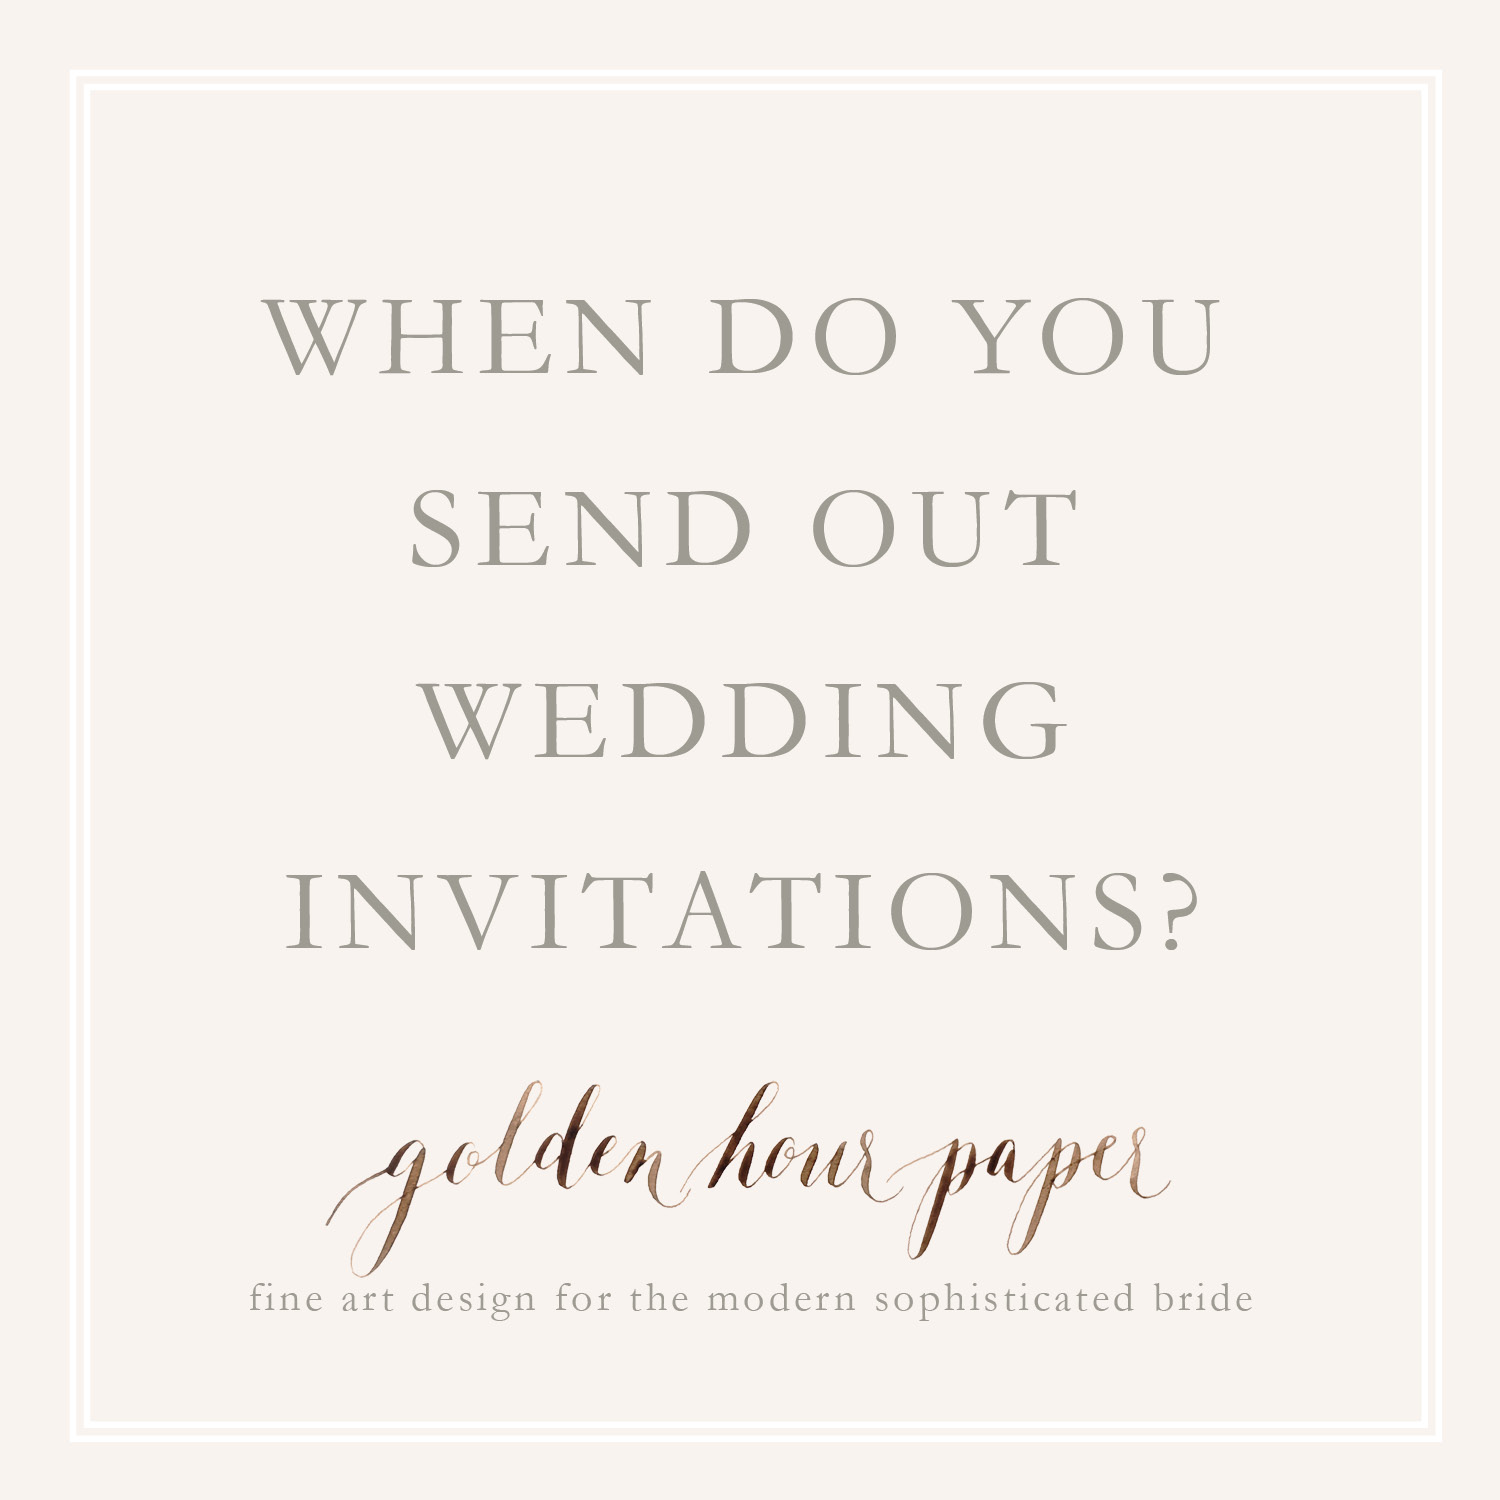 When Do You Send Out Wedding Invitations